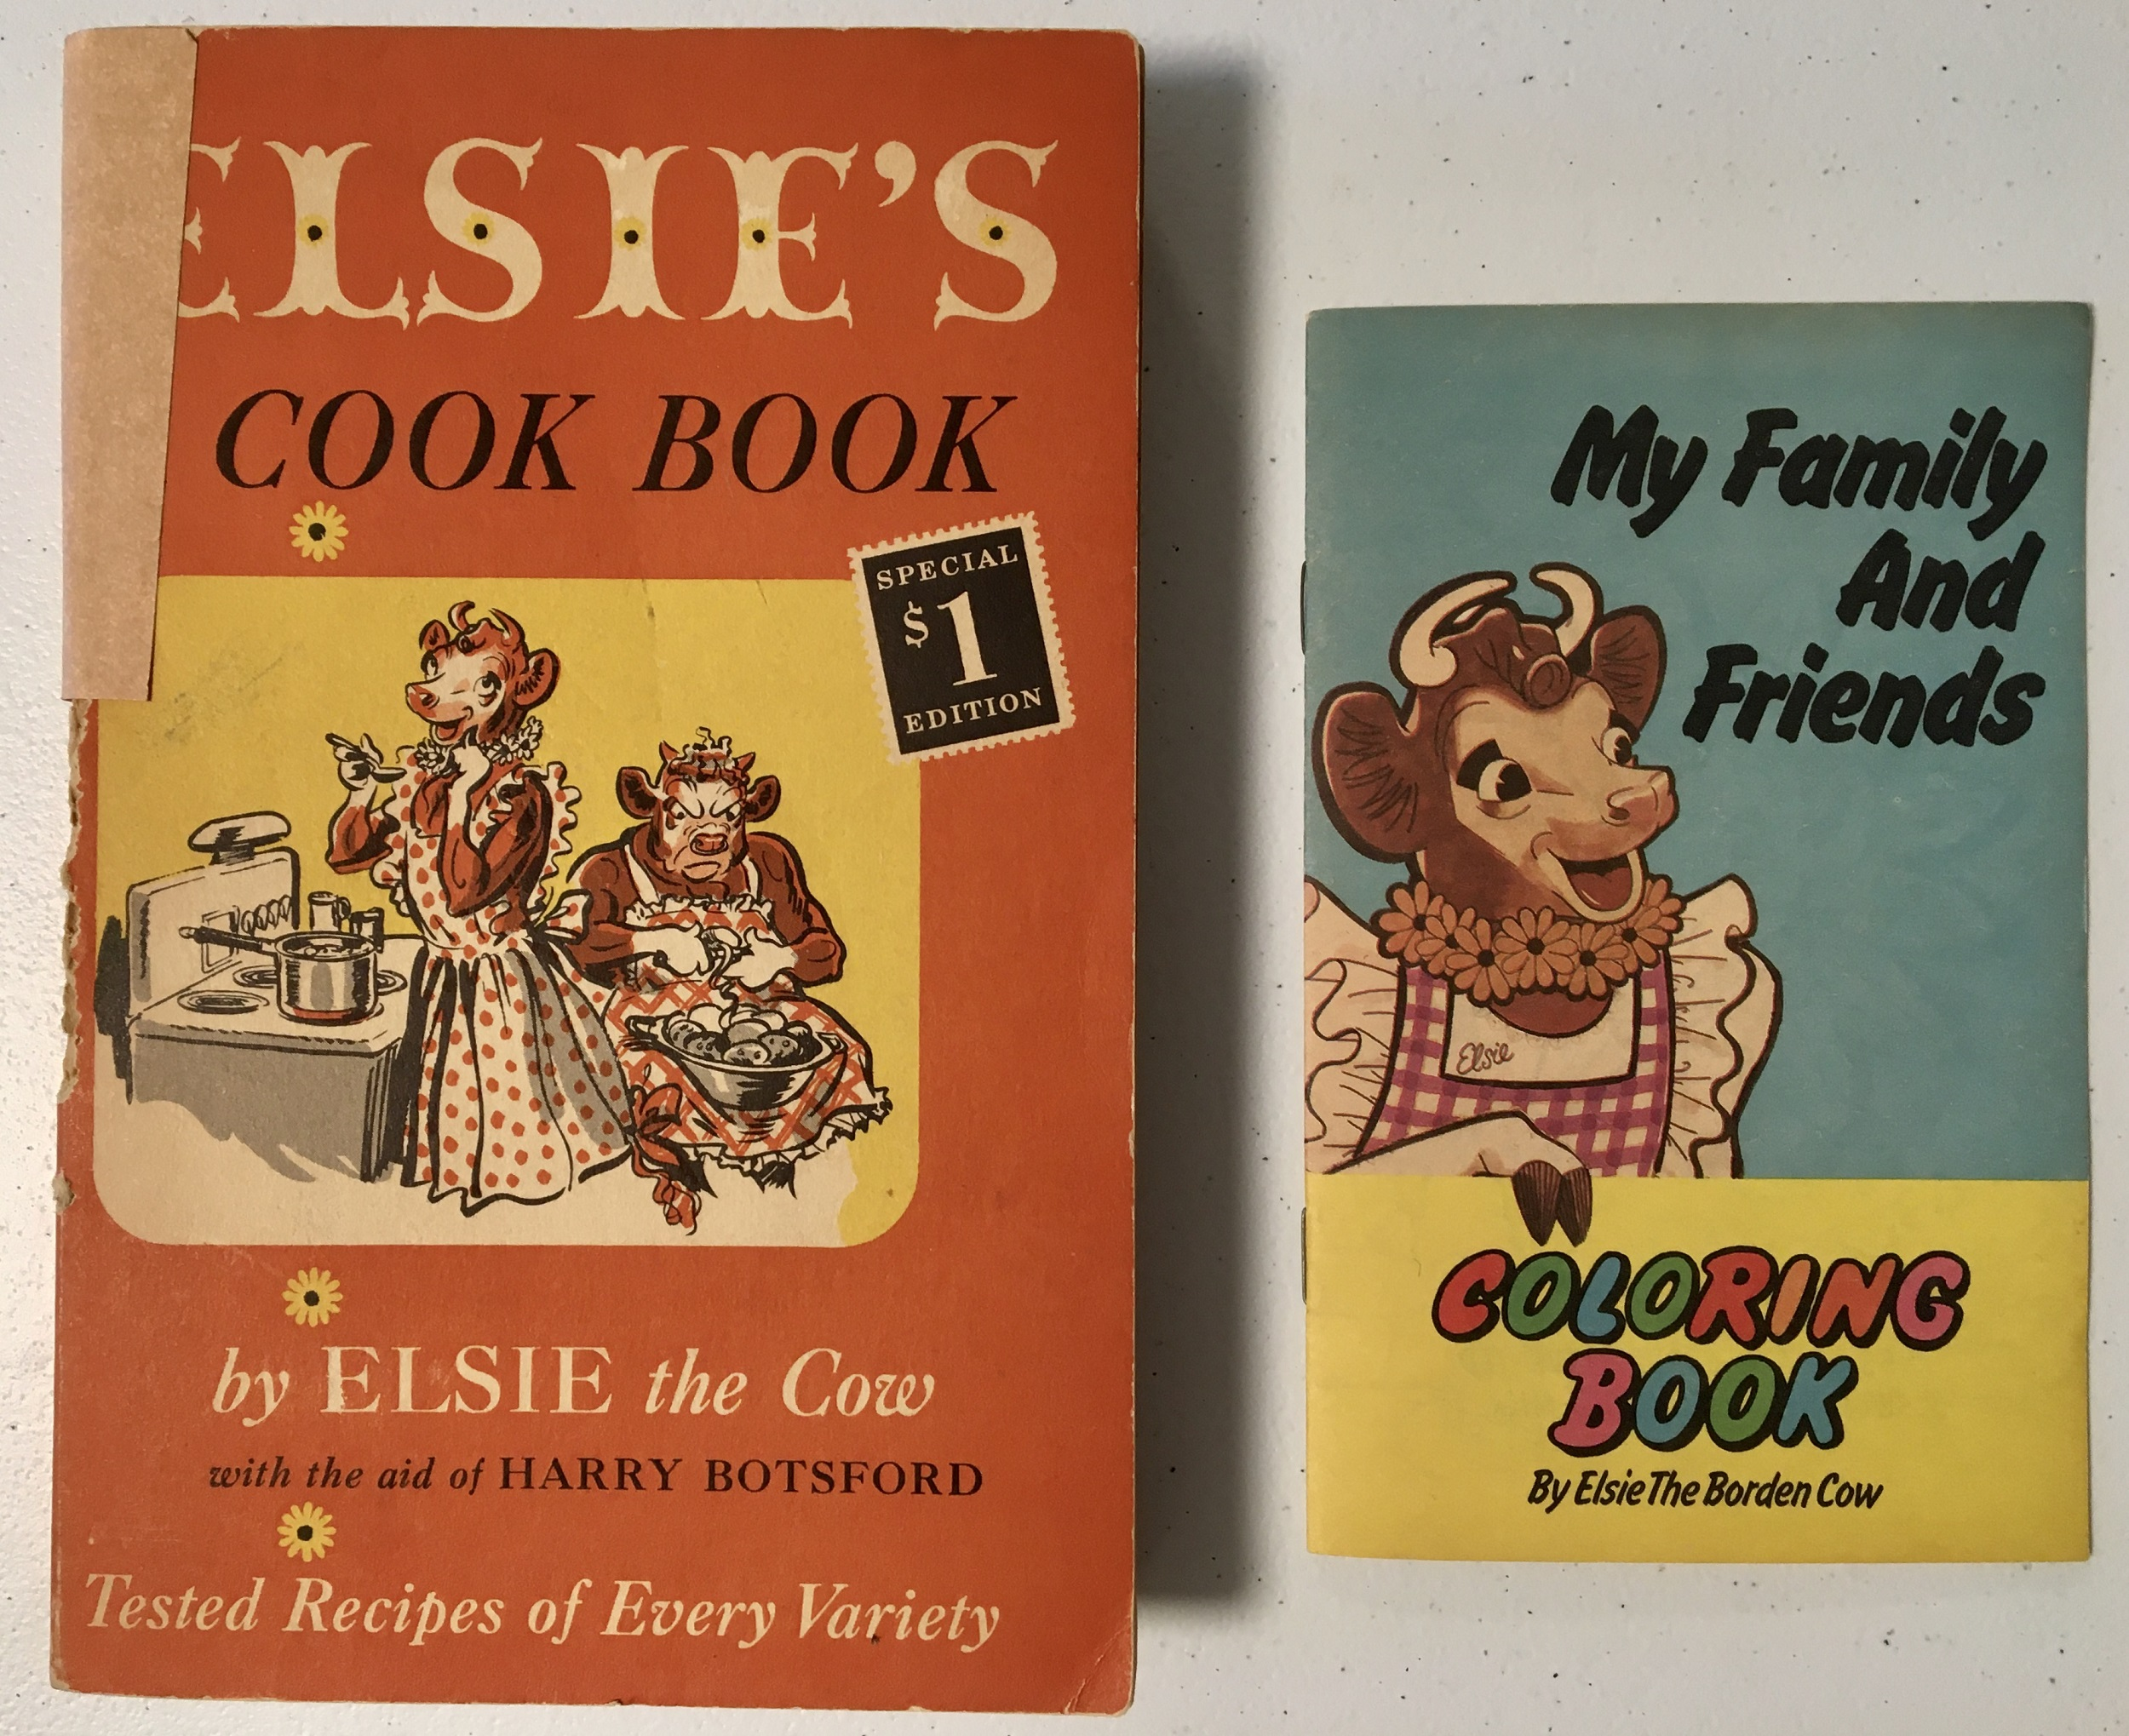 Elise the Cow themed cook book and coloring book